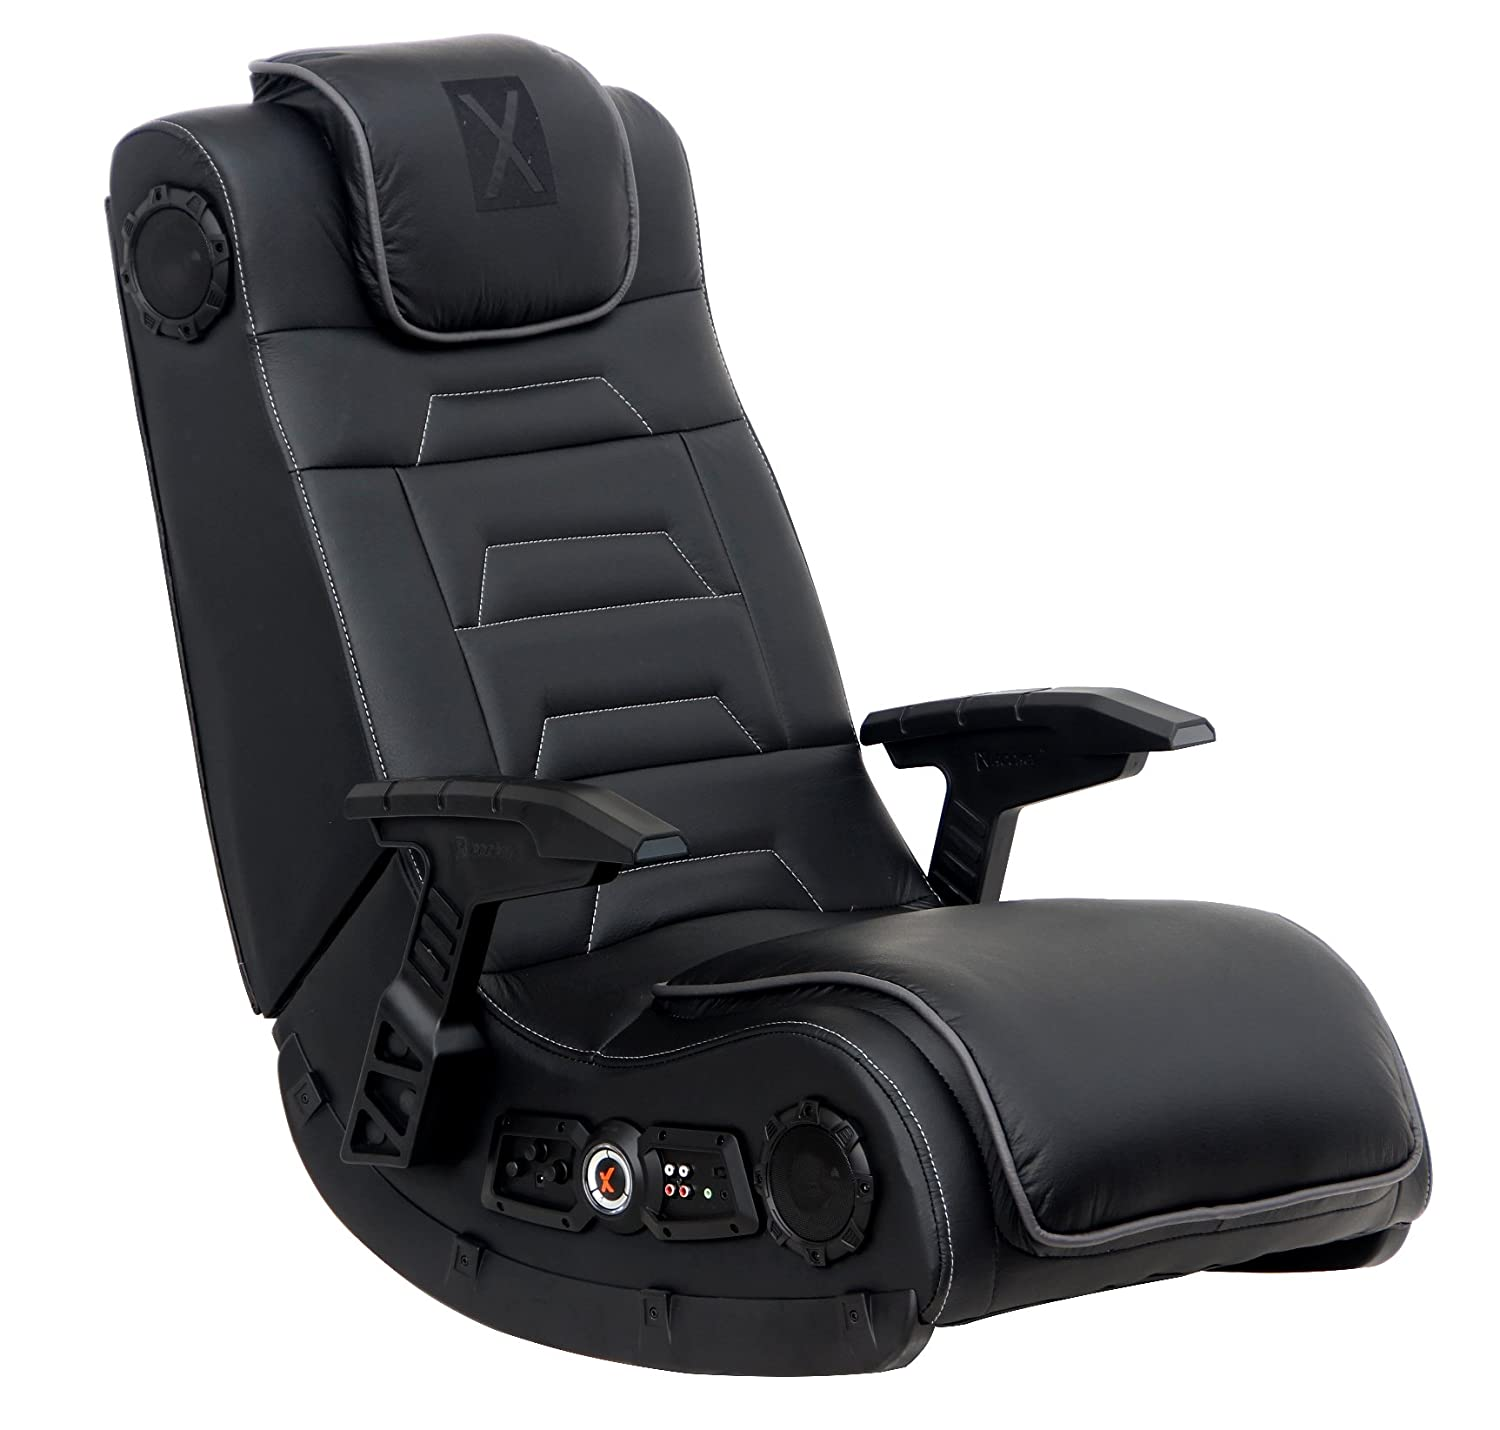 Top 3 X Rocker PC Chairs with Sound